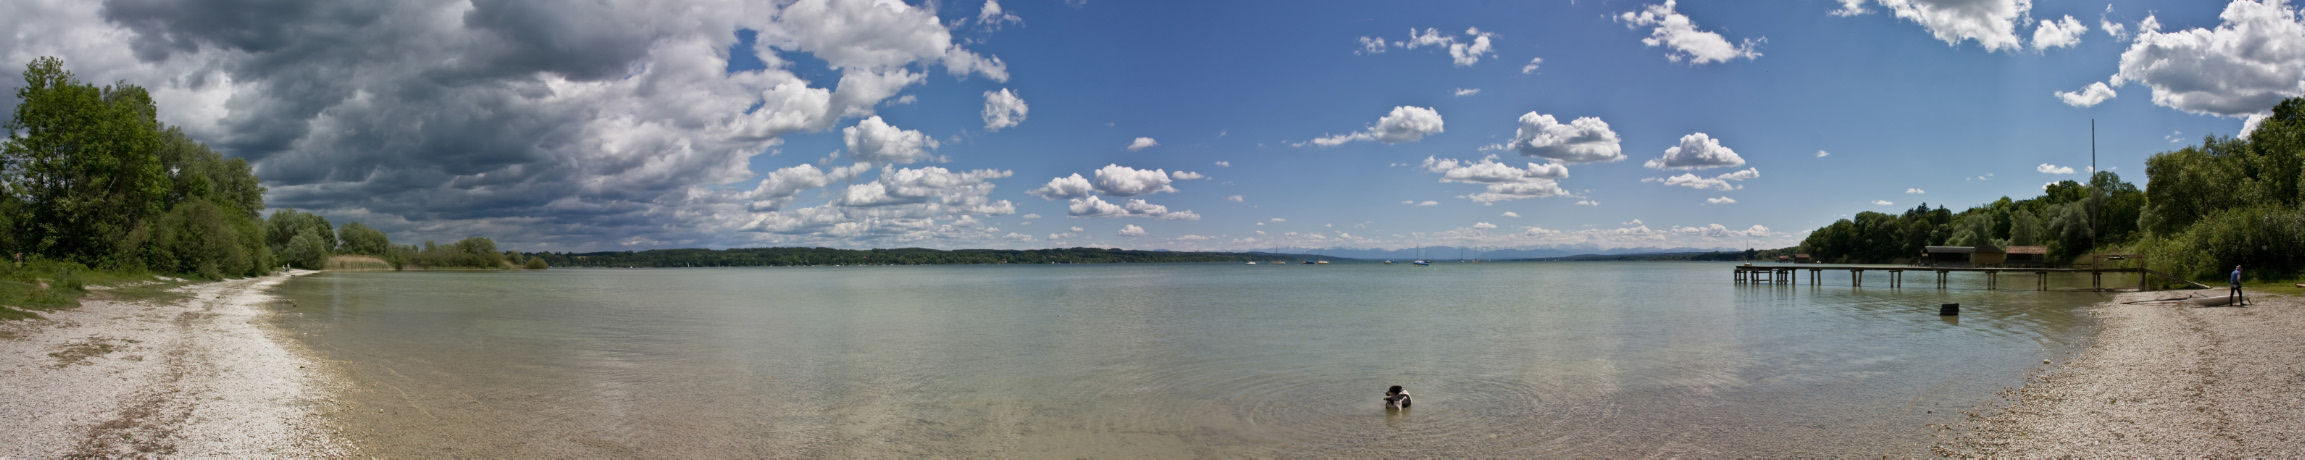 ...am Ammersee